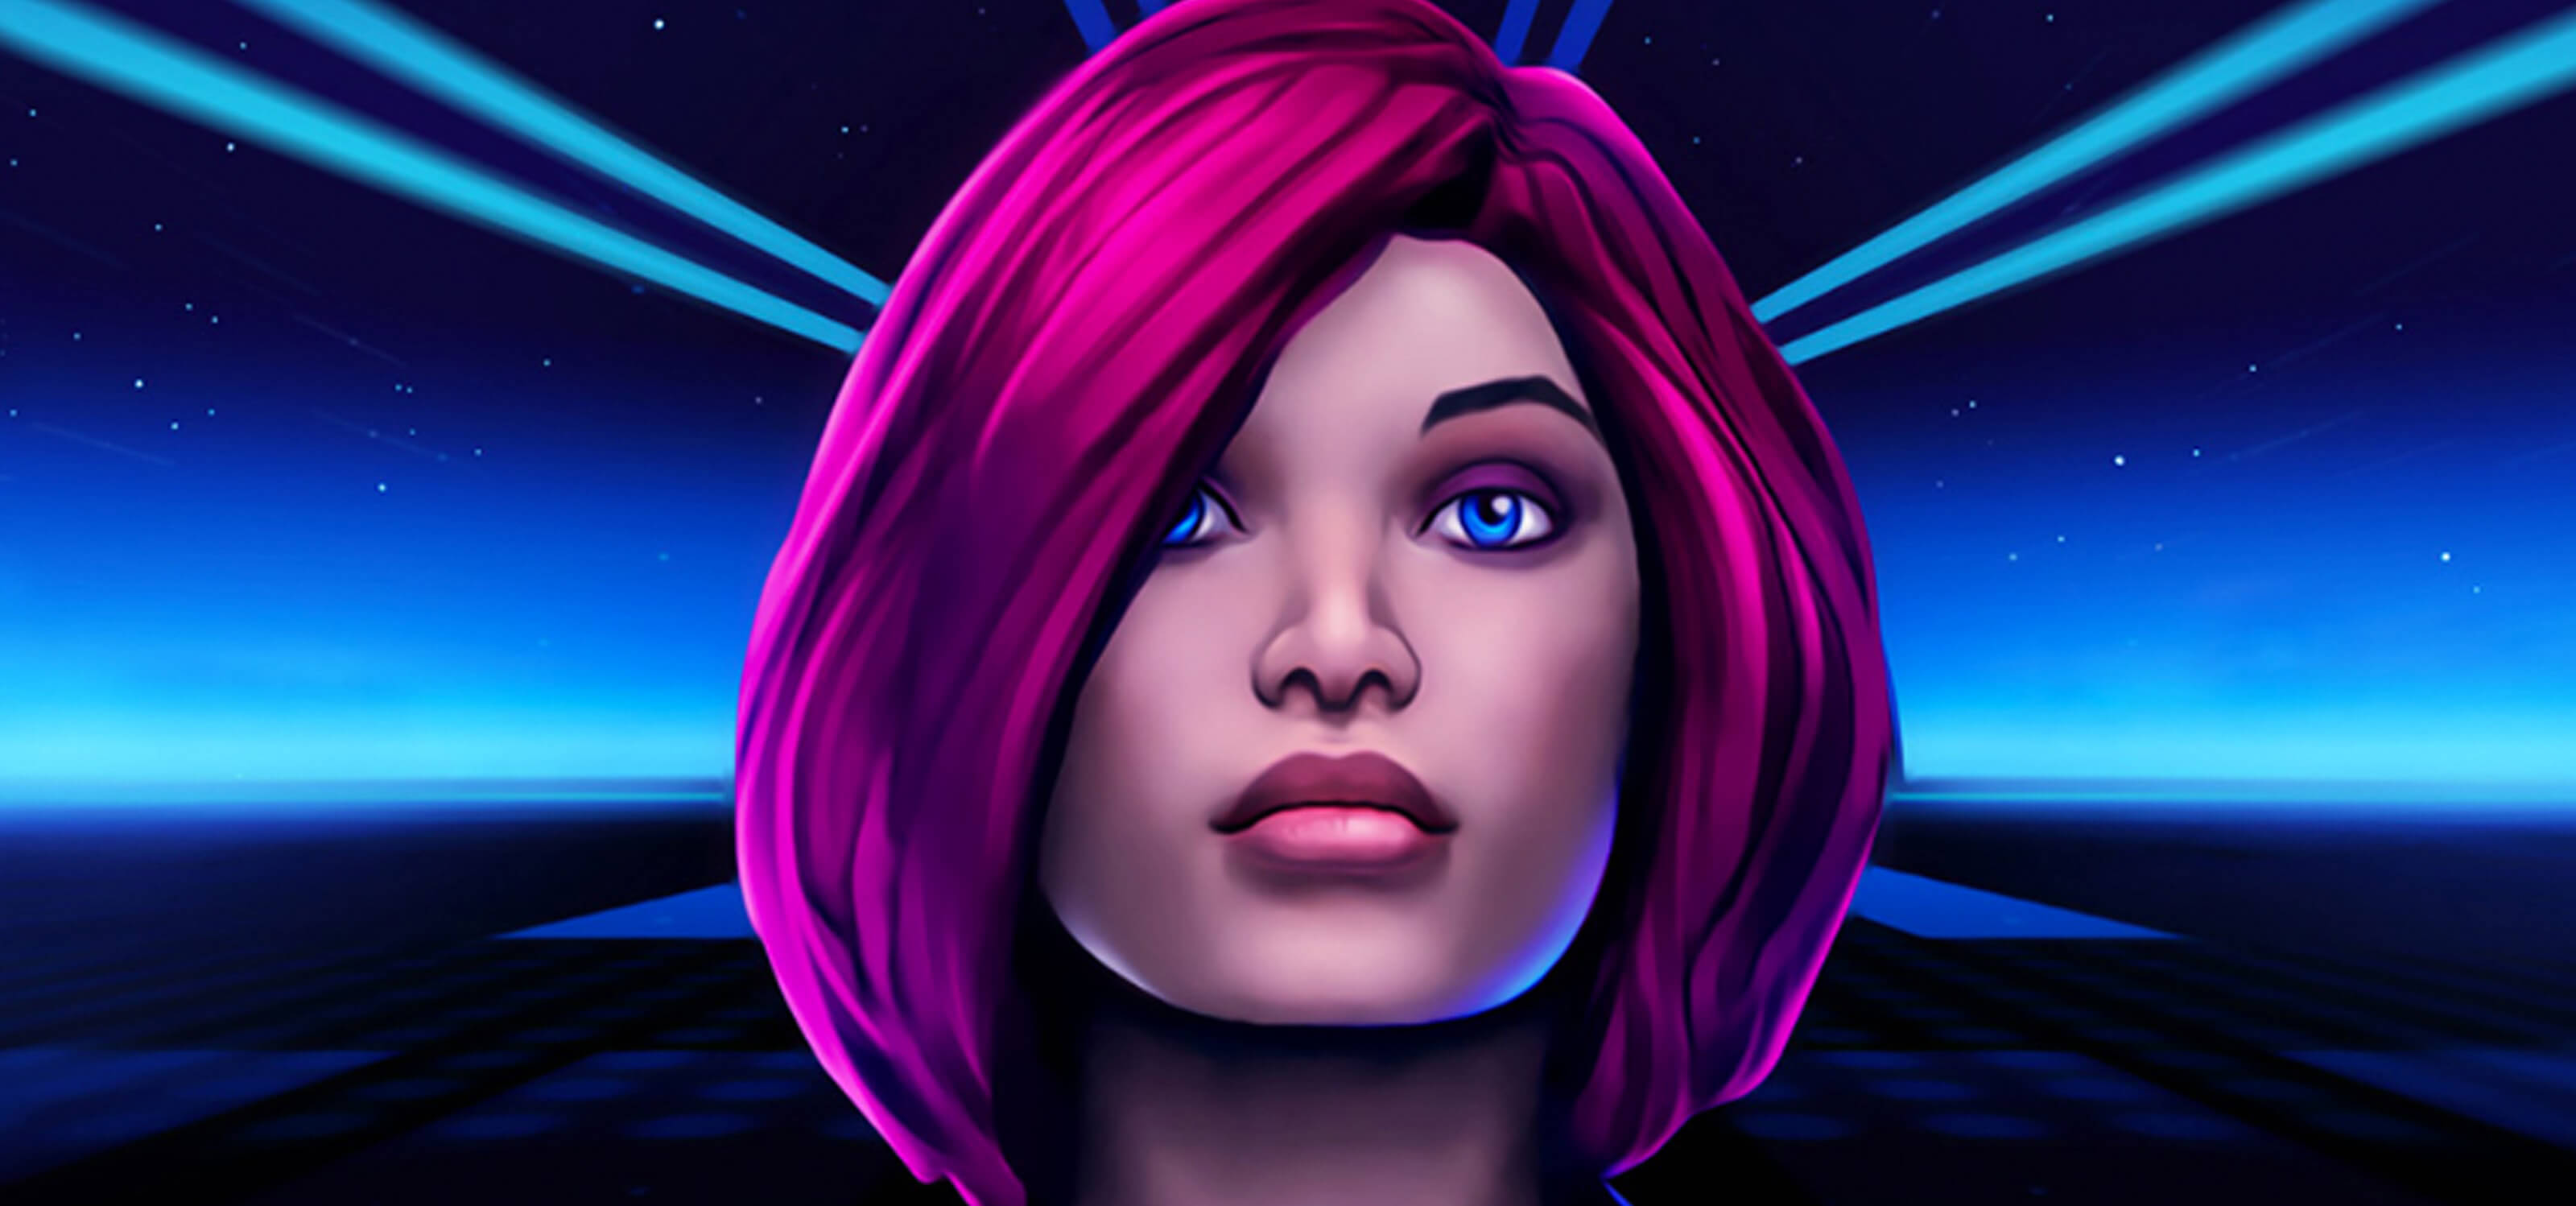 Screenshot from GrooVR featuring a pink-haired female character